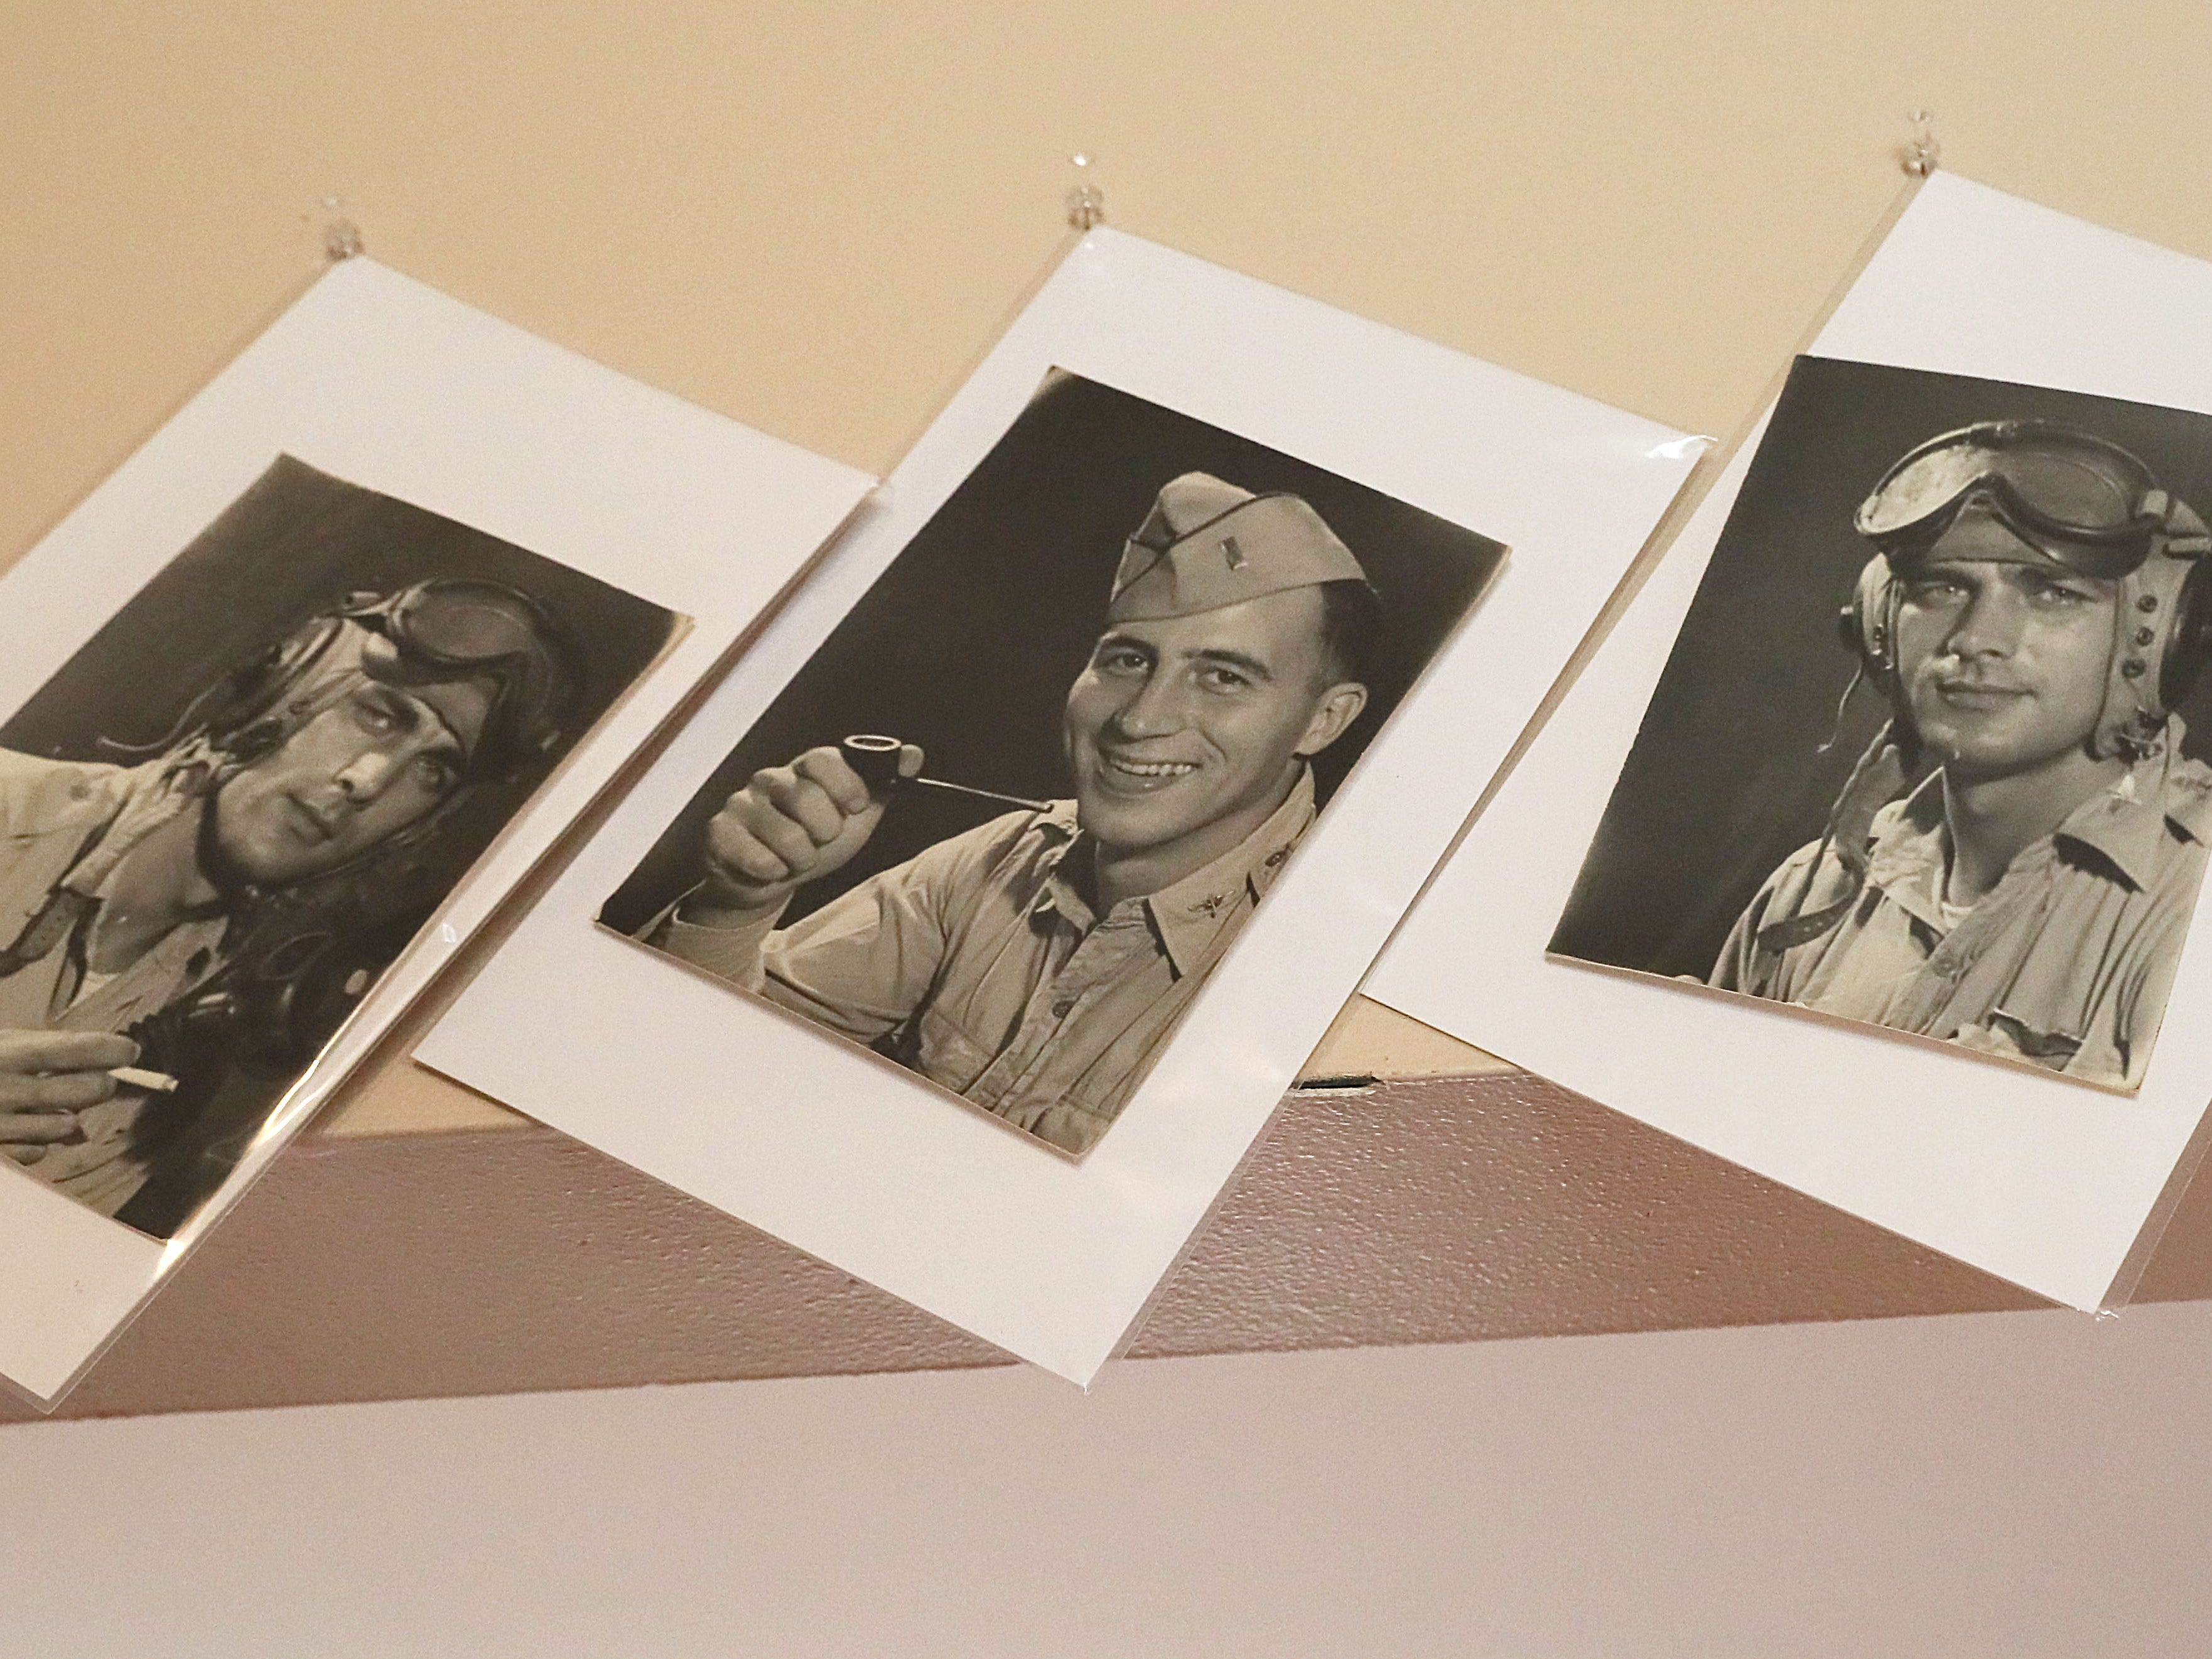 These are photographs that Jake Skocir took of friends during his time in the 17th Photo Reconnaissance Squadron during World War II.